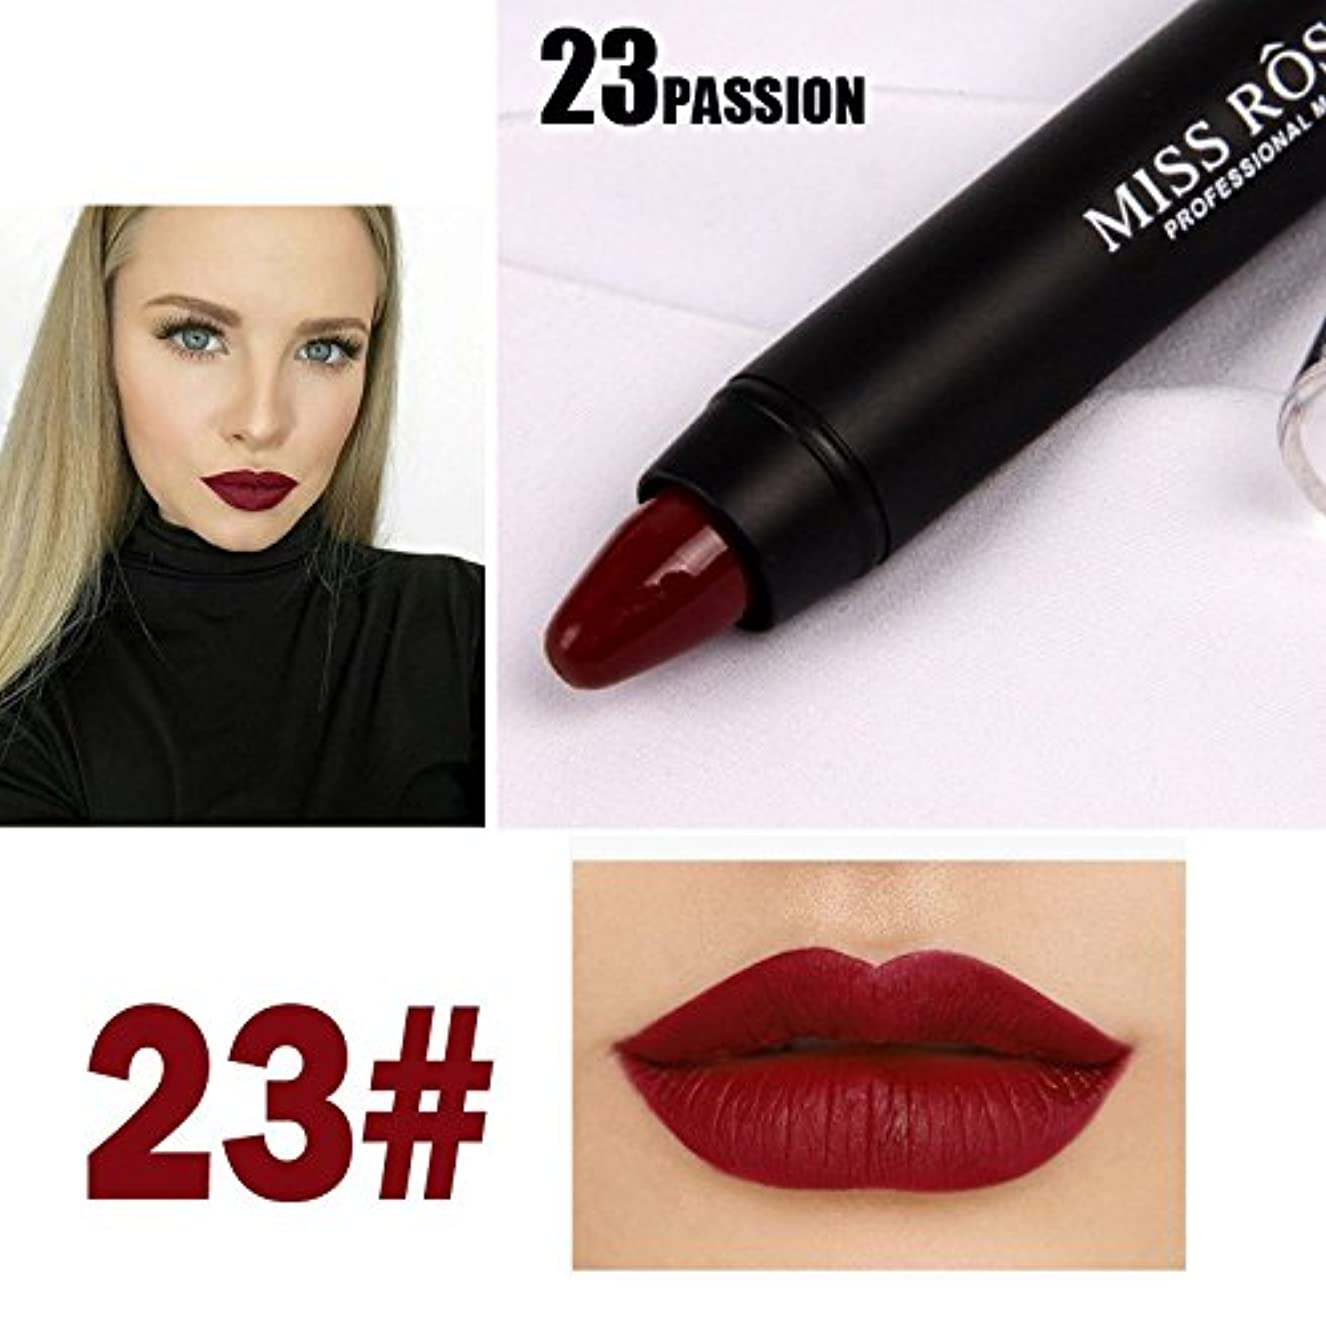 MISS ROSE Professional Women Waterproof Lipstick Lips Cream Beauty Lote Batom Matte Lipstick Nude Pencils Makeup